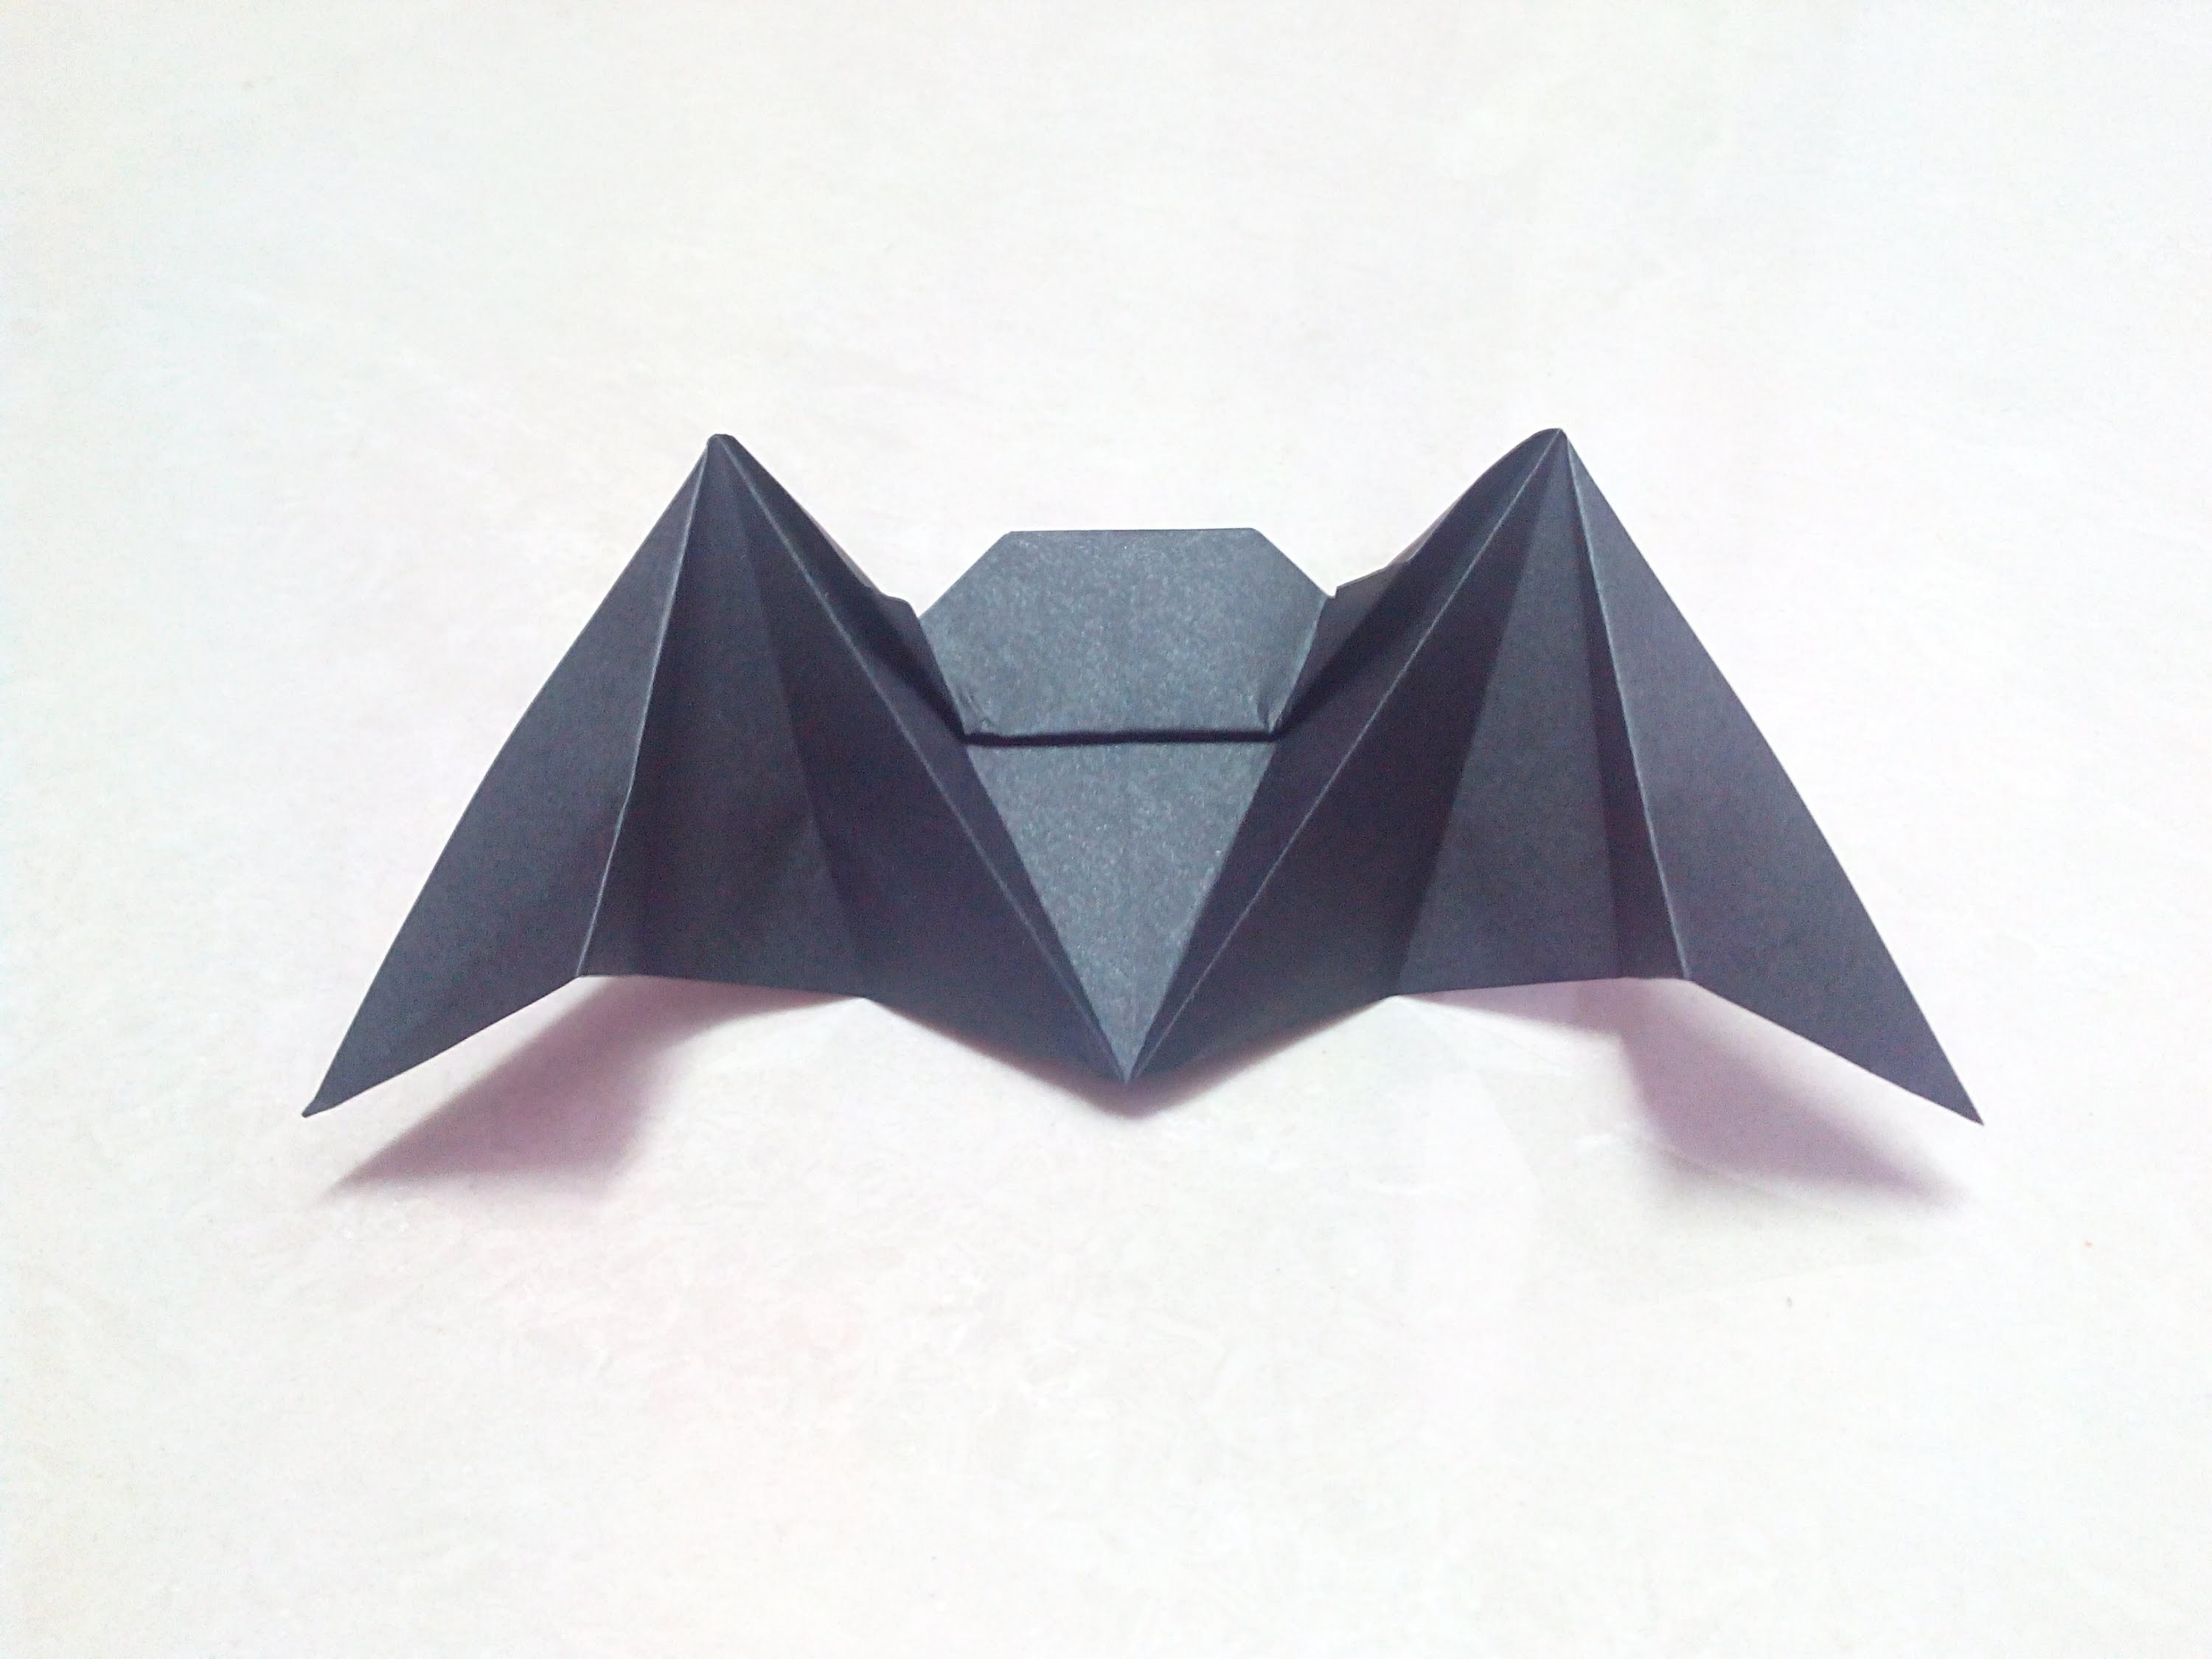 How to make an origami paper bat | Origami. Paper Folding Craft, Videos and Tutorials.